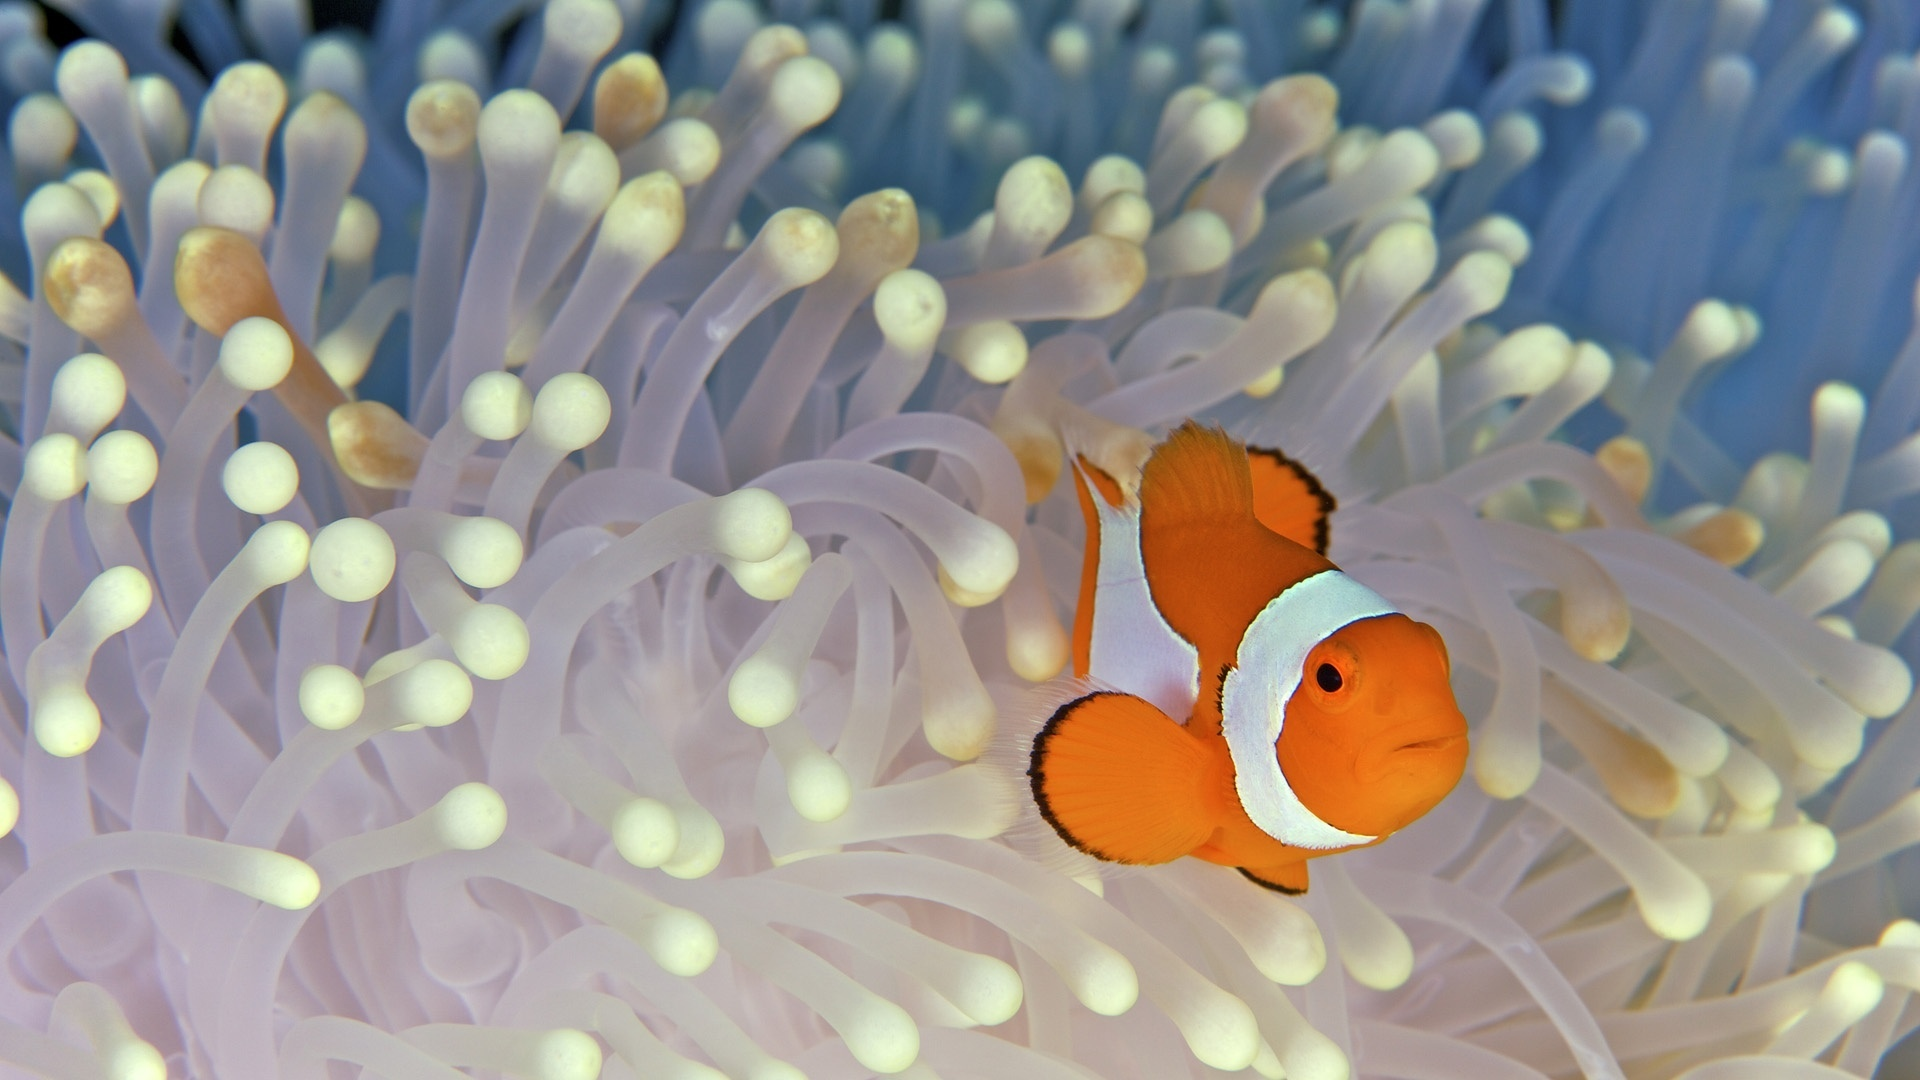 Clown fish wallpaper 1920x1080 69913 WallpaperUP 1920x1080